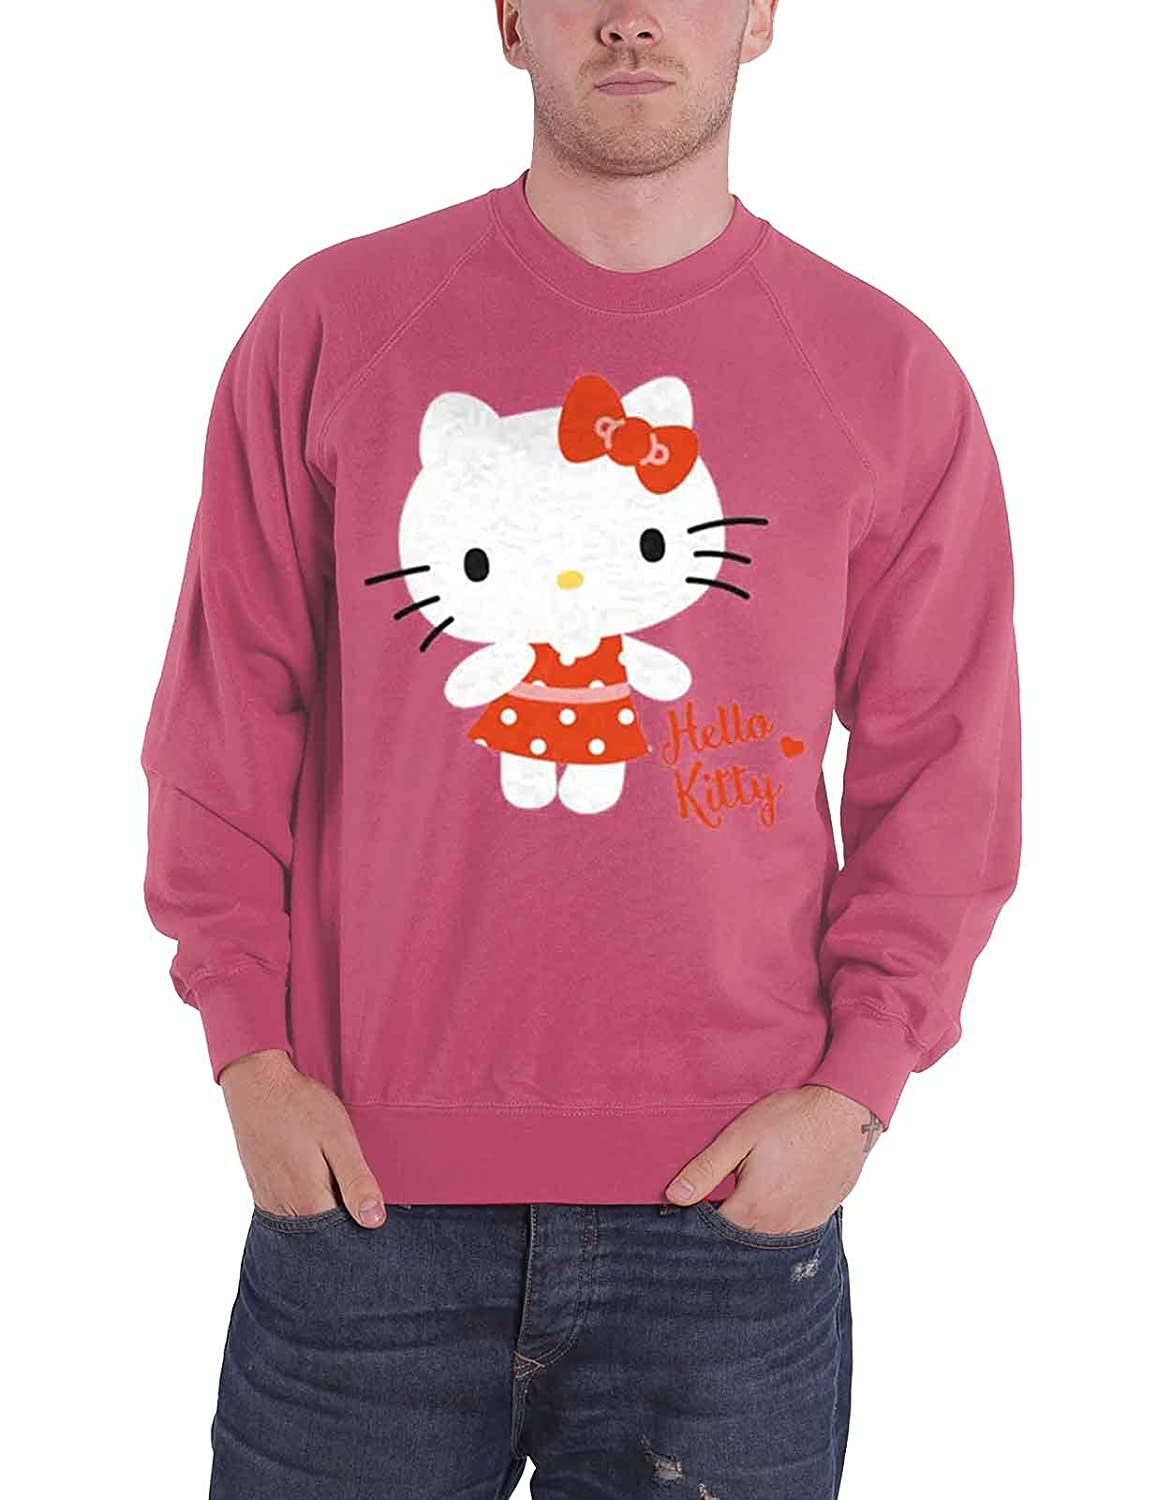 Hello Kitty Sweatshirt Polka Dots logo new Official Slim Fit Pink